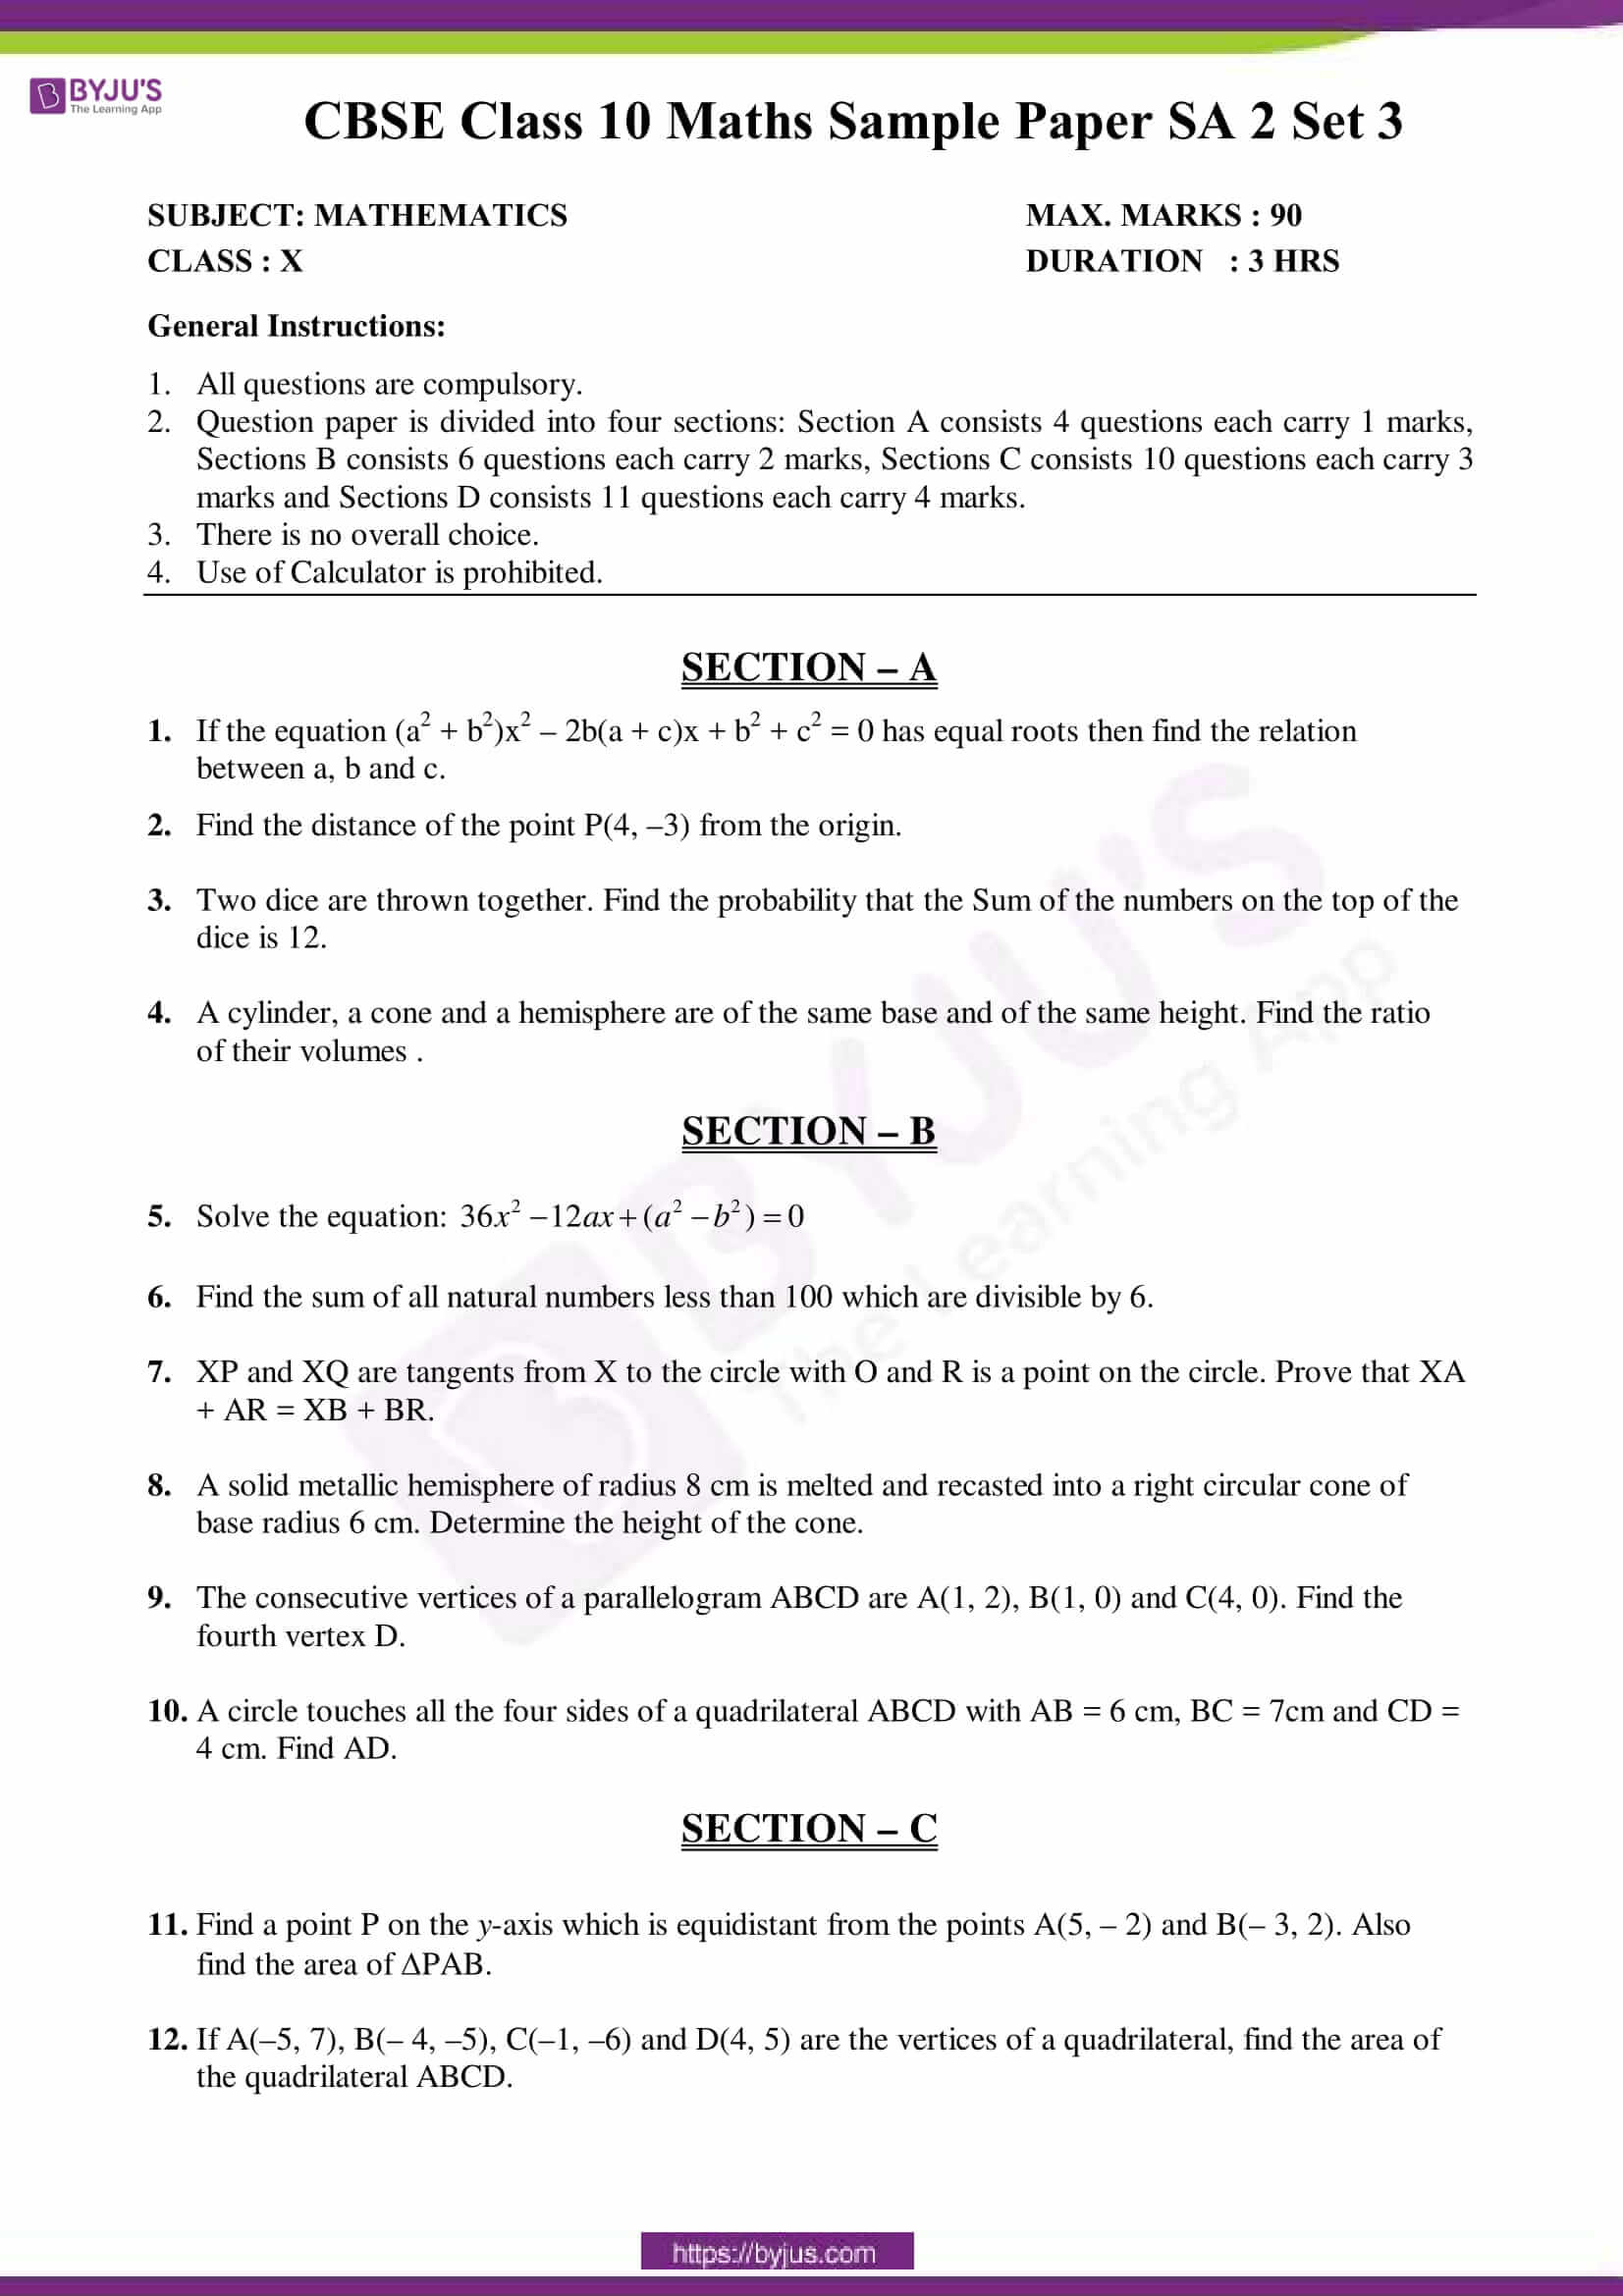 cbse sample paper class 10 maths sa 2 set 3